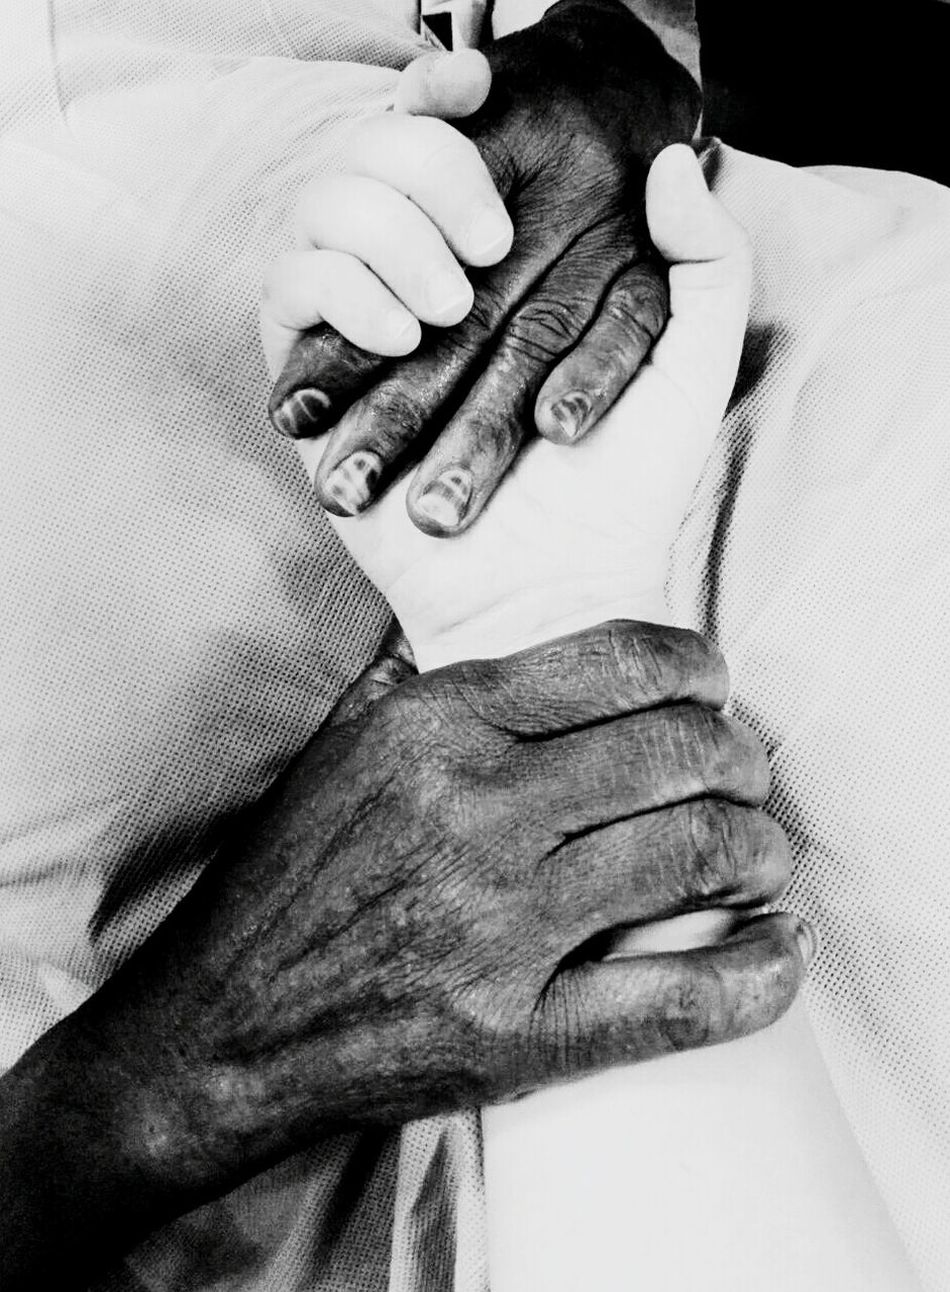 Generosity Generosity Generosidad Generous Balck And White People Hans Help Voluntary Work Voluntario Voluntary Africa Hospital Hospitality Ong Friendship ❤ To Thank Give Me Your Hand  Damelamano Nicephoto Fotografia Mobile Photography Momento Moment Nicemomentswithnicepeople😉 Nicemoment